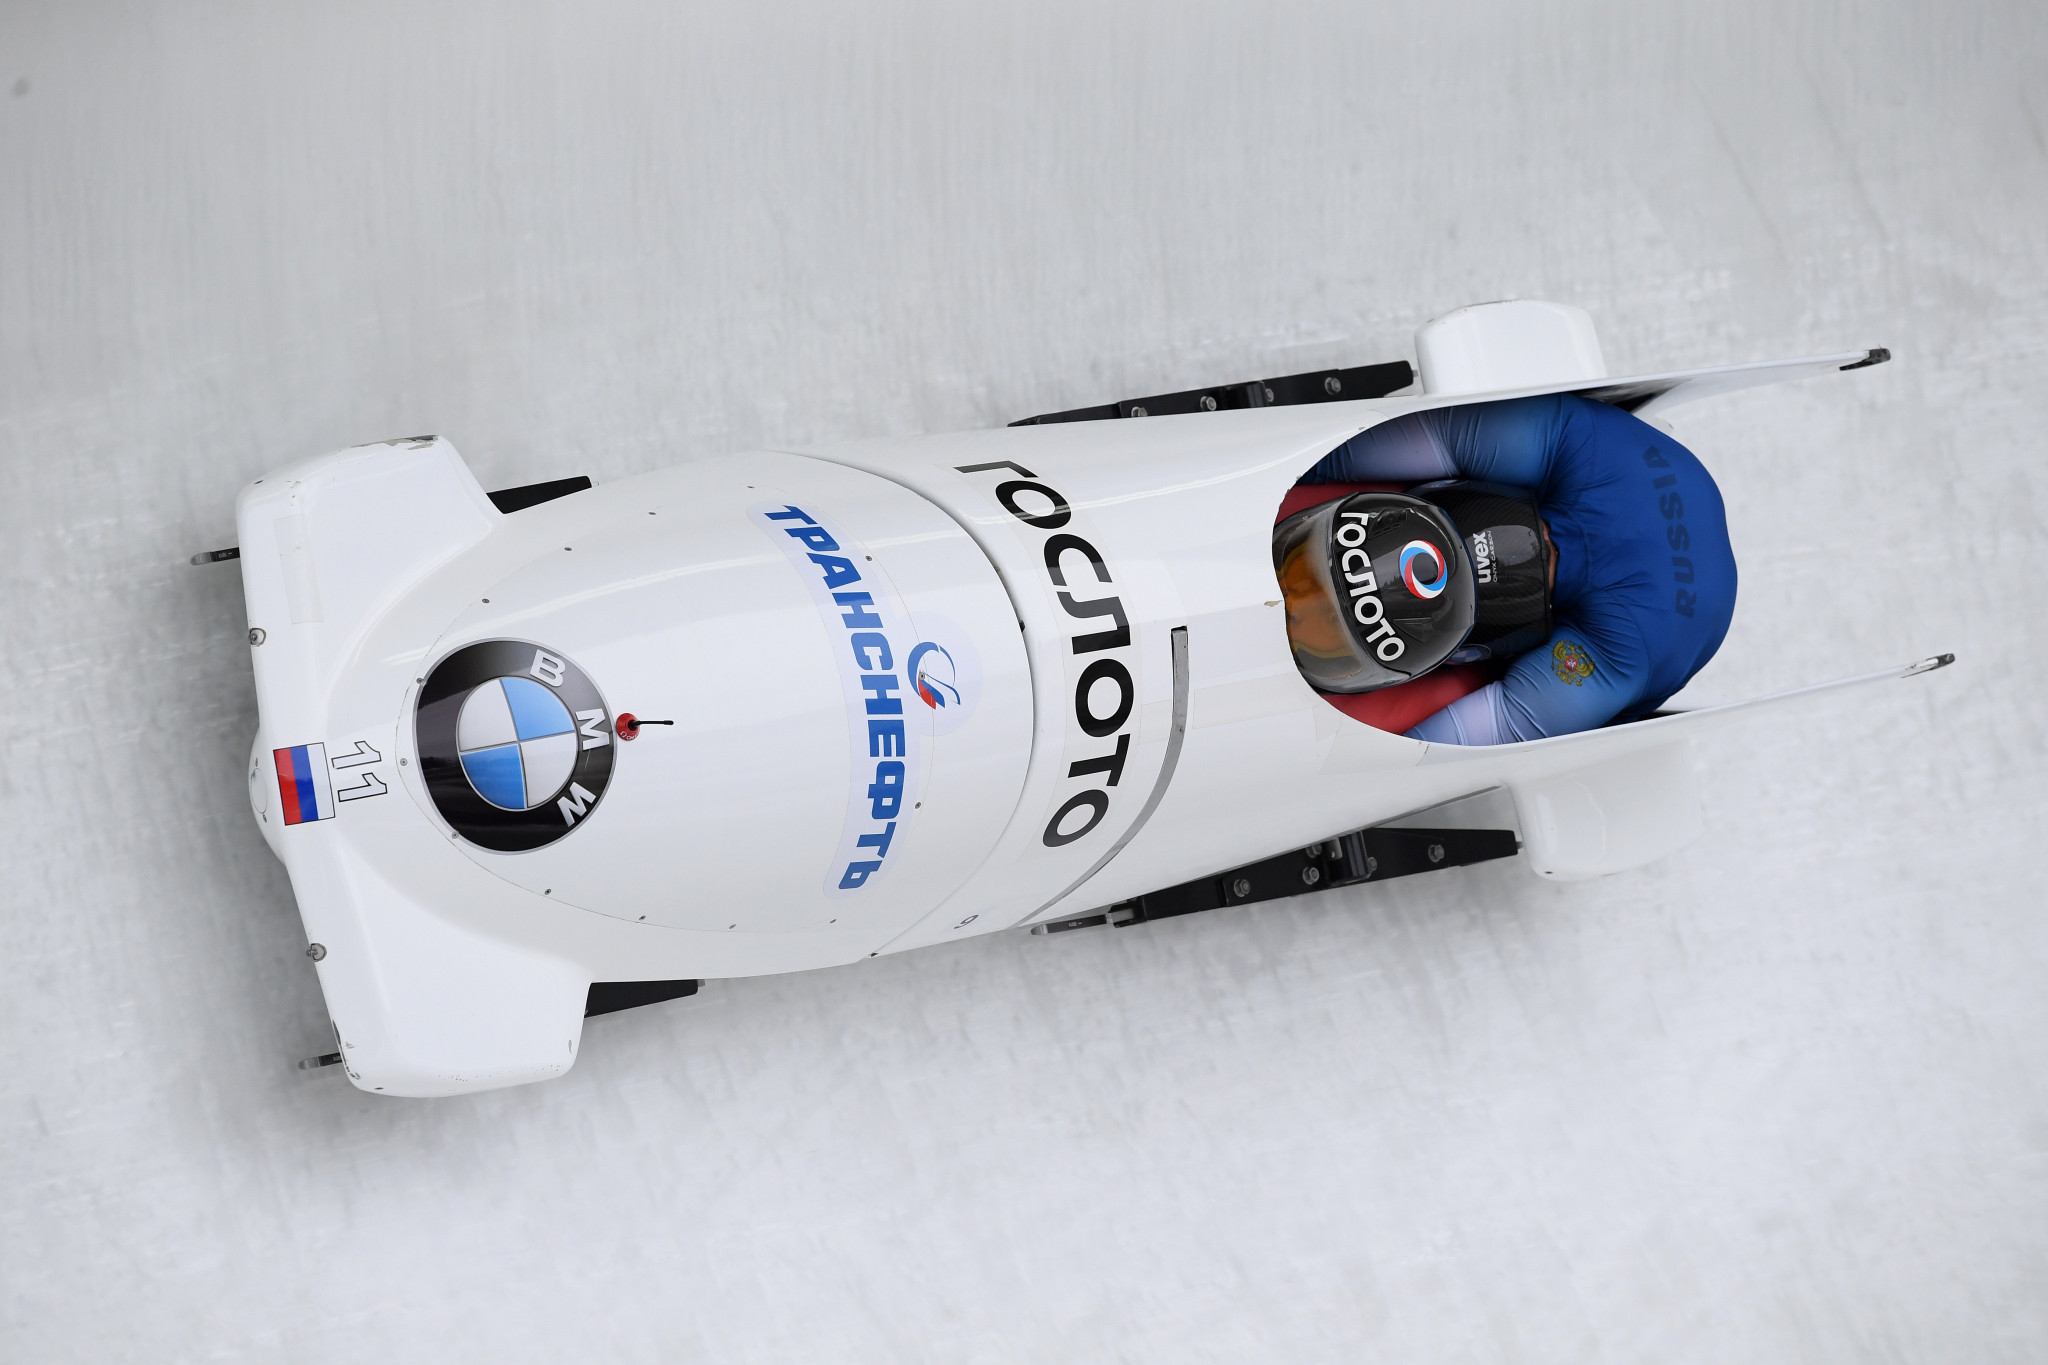 Russian bobsleigh team to miss both Sigulda World Cups after COVID-19 outbreak